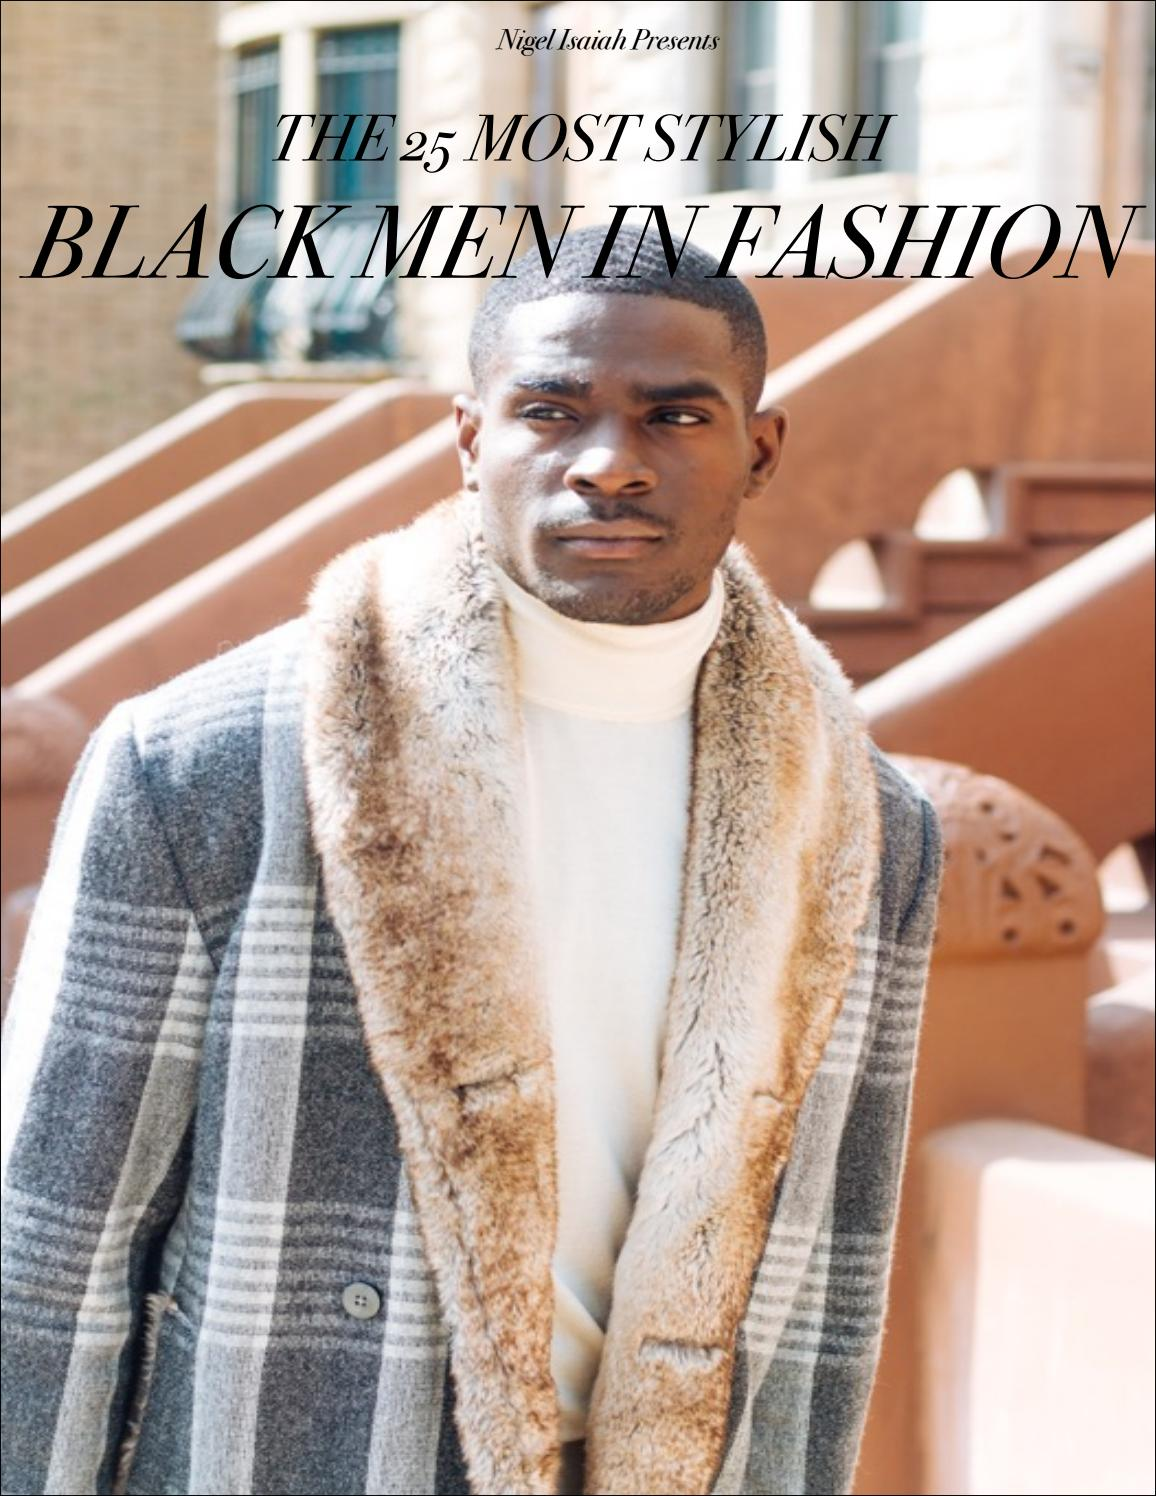 The 25 Most Stylish Black Men In Fashion By Kolor Magazine